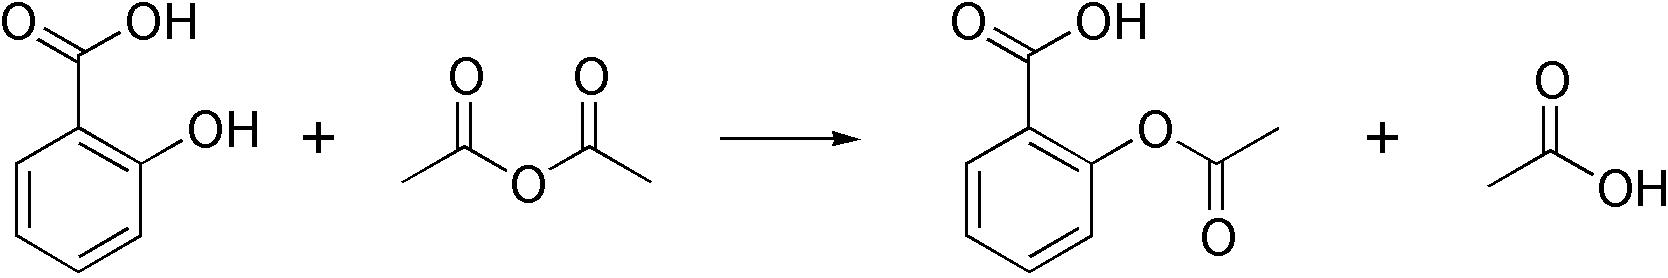 synthesis of acetylsalicylic acid